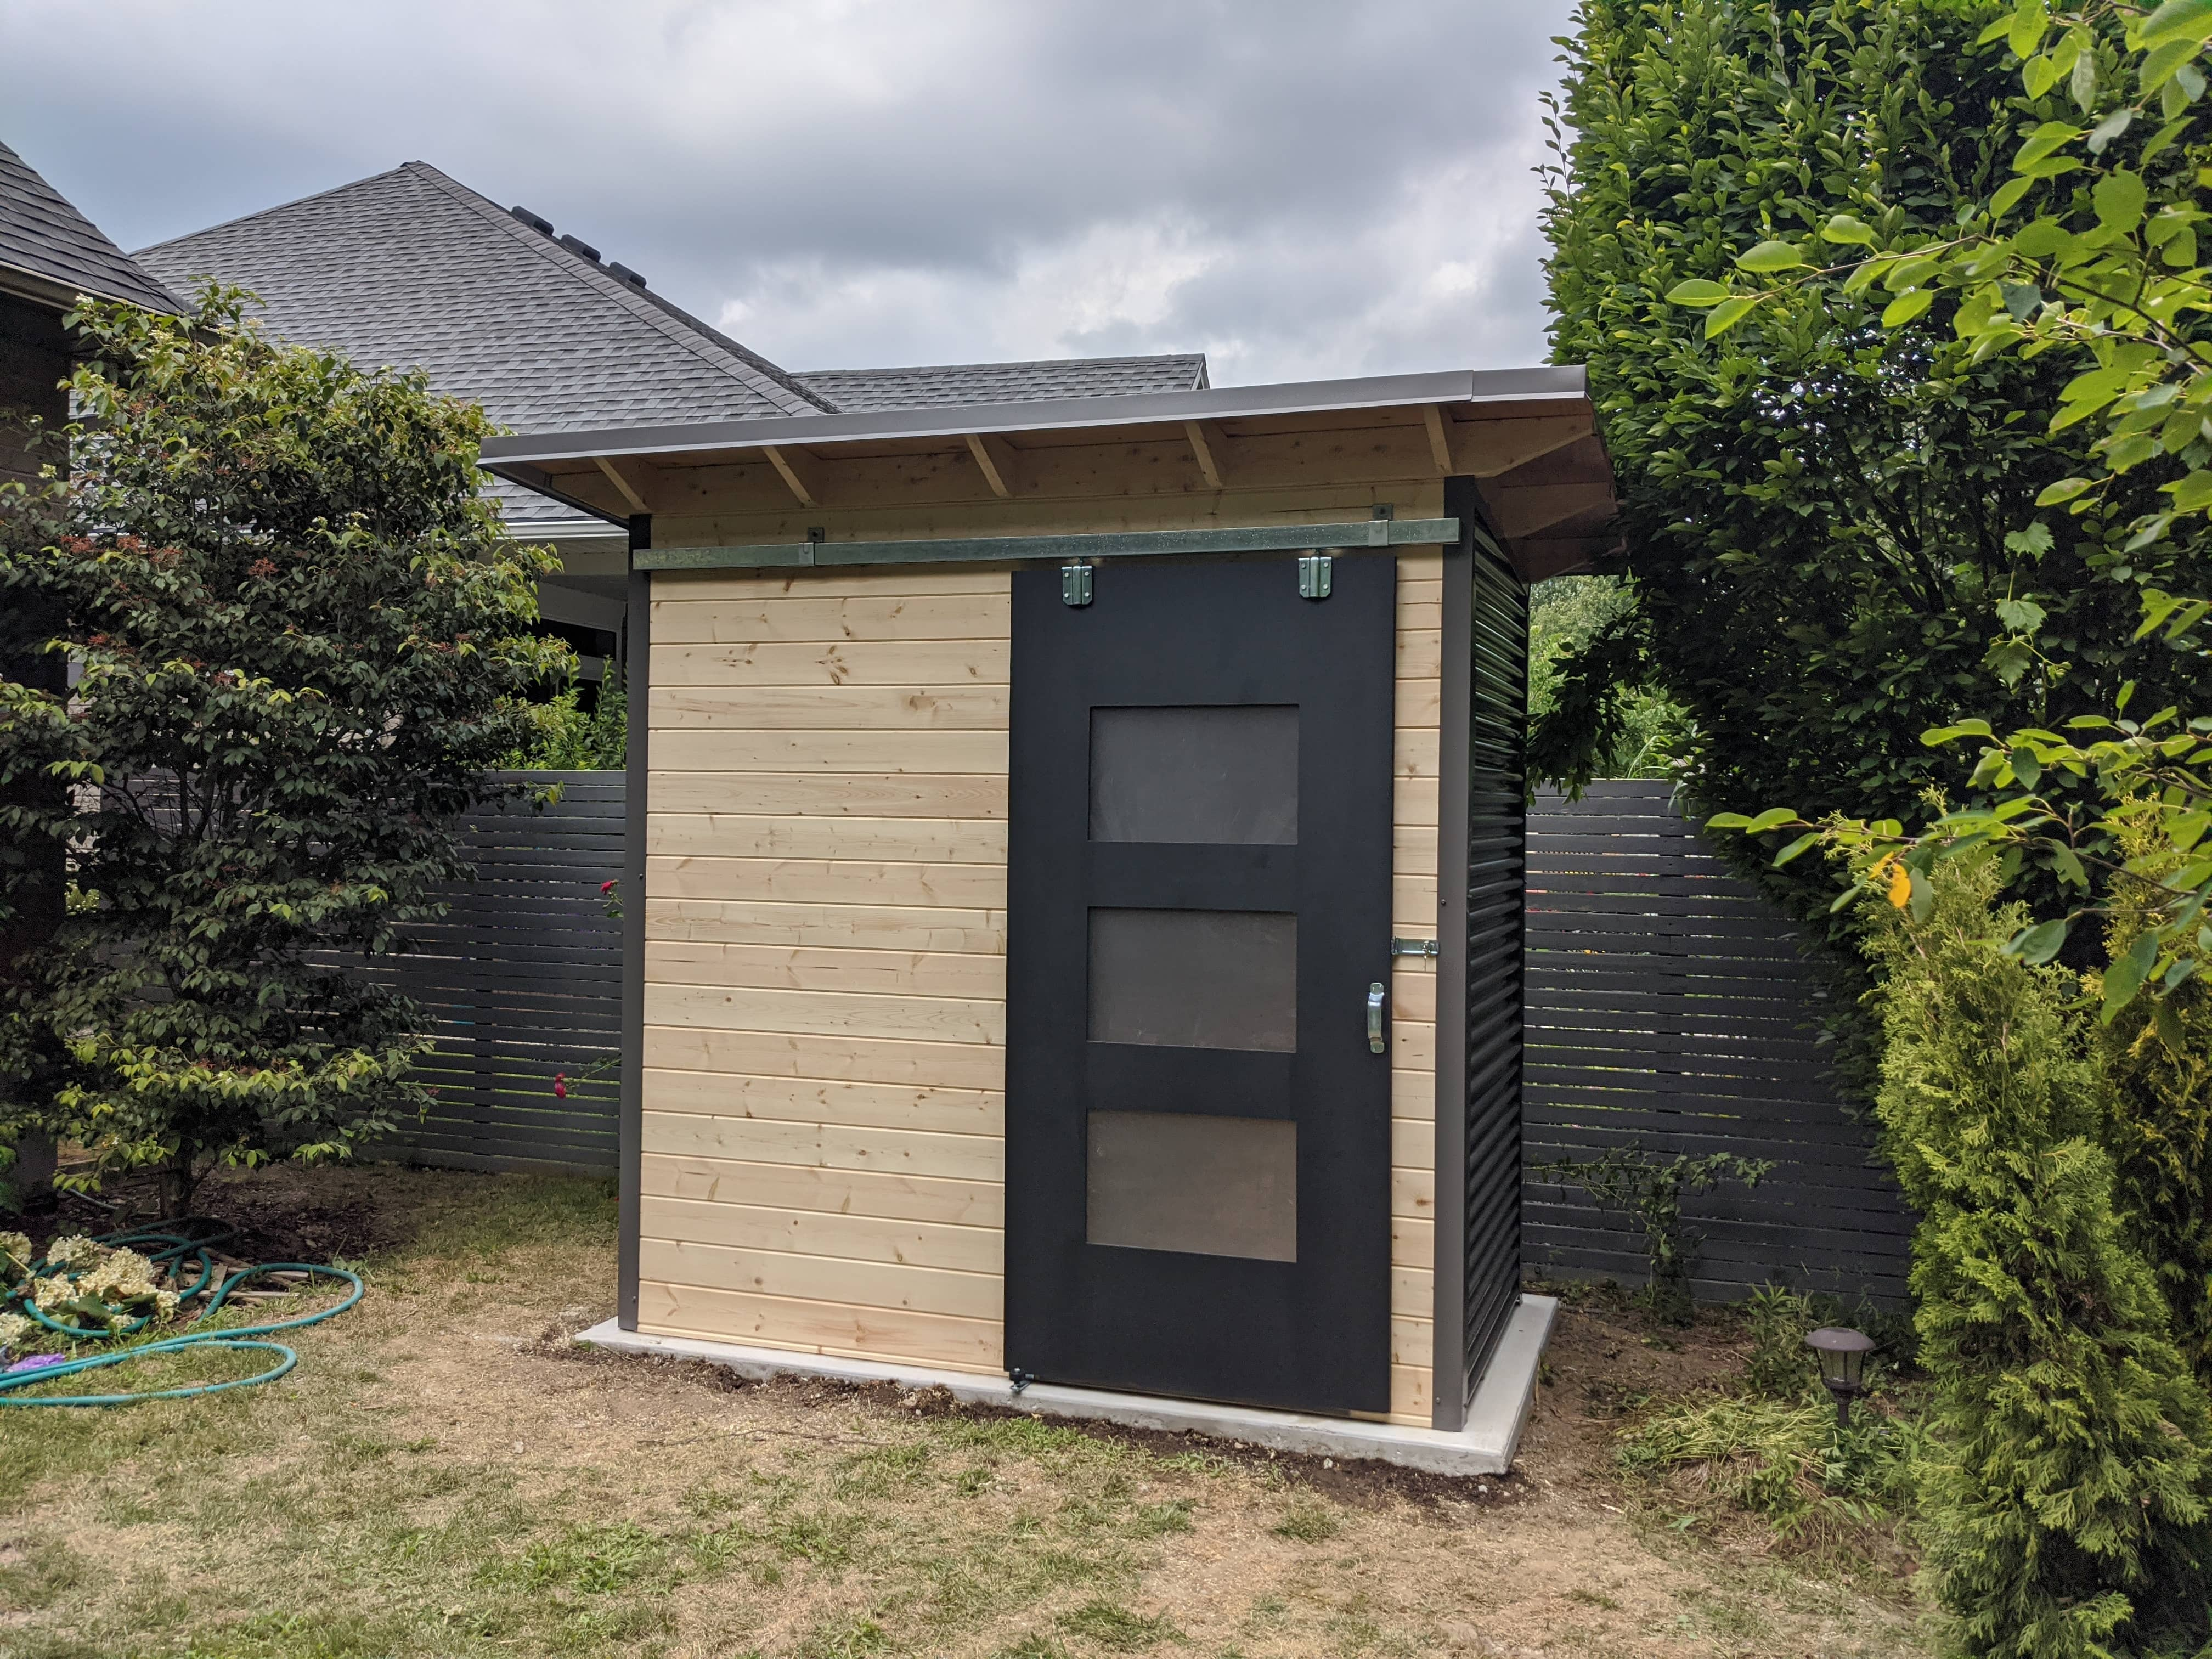 8' x 4' Essential Garden Shed with Clear-coated Pine Front and Charcoal Steel